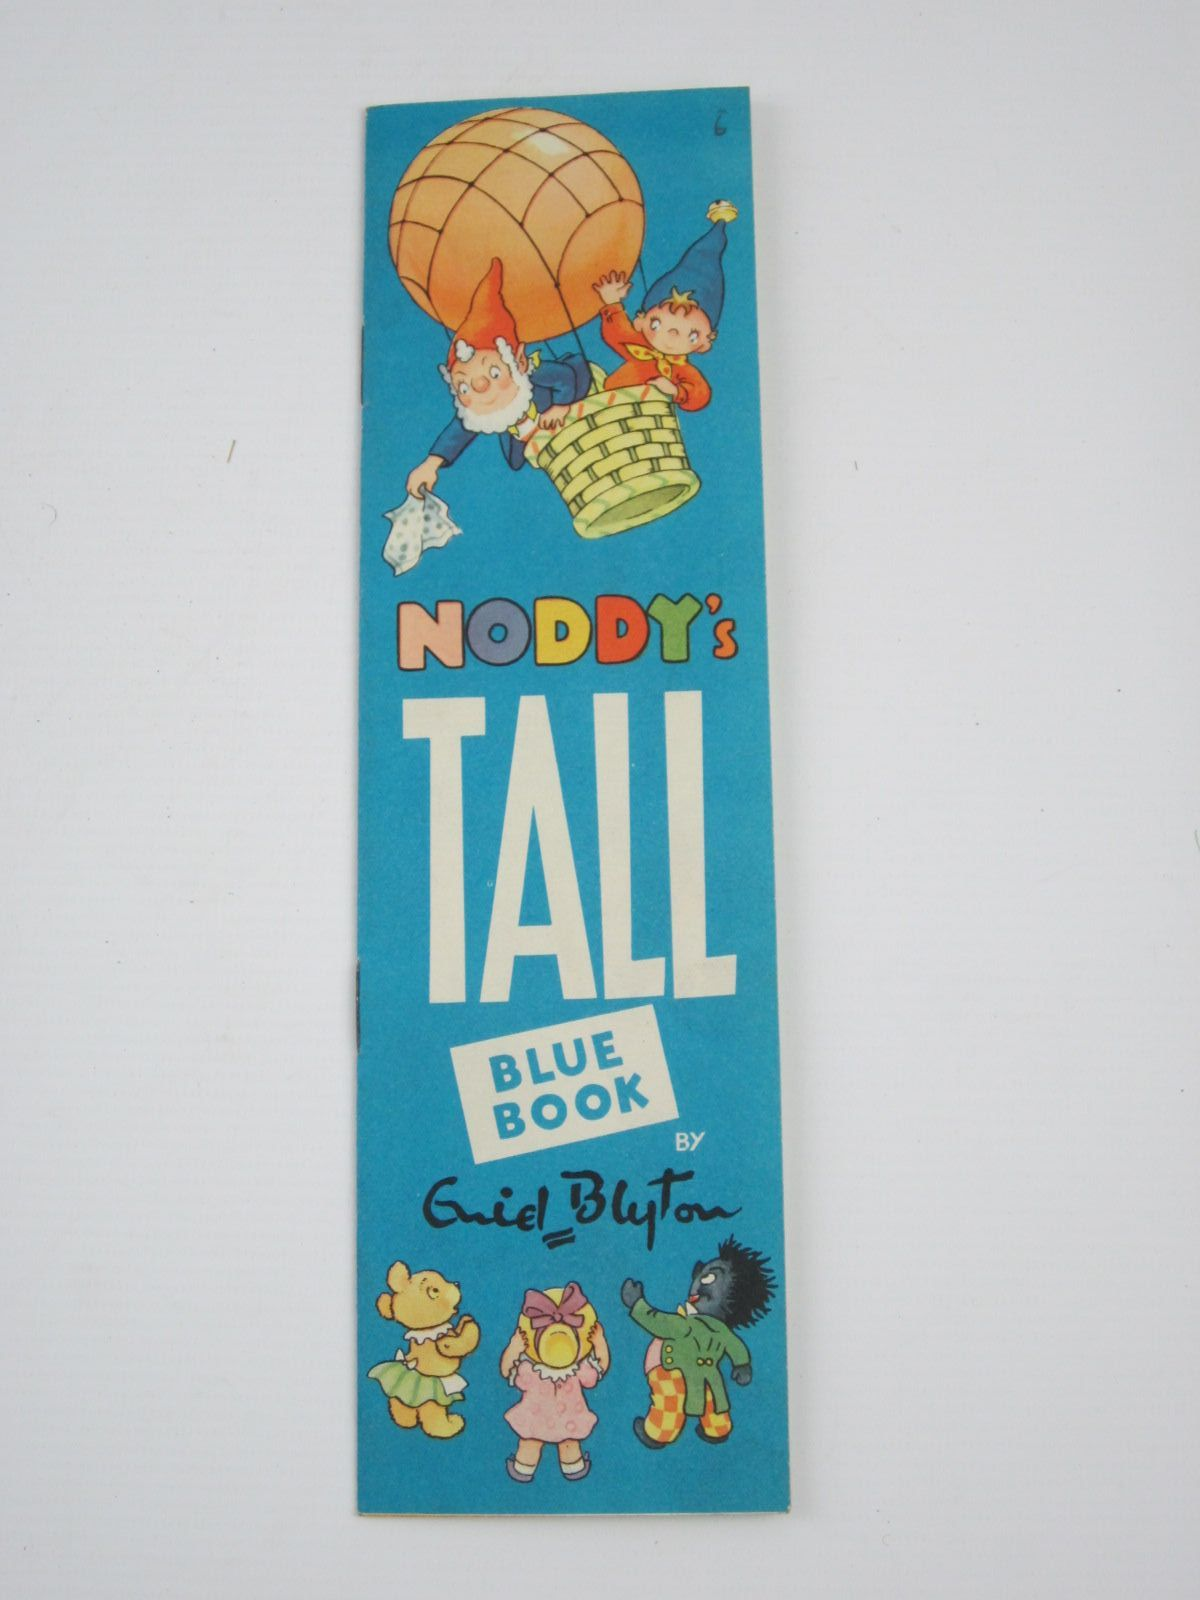 Photo of NODDY'S TALL BLUE BOOK written by Blyton, Enid illustrated by Tyndall, Robert published by Sampson Low, Marston & Co. Ltd. (STOCK CODE: 1310112)  for sale by Stella & Rose's Books